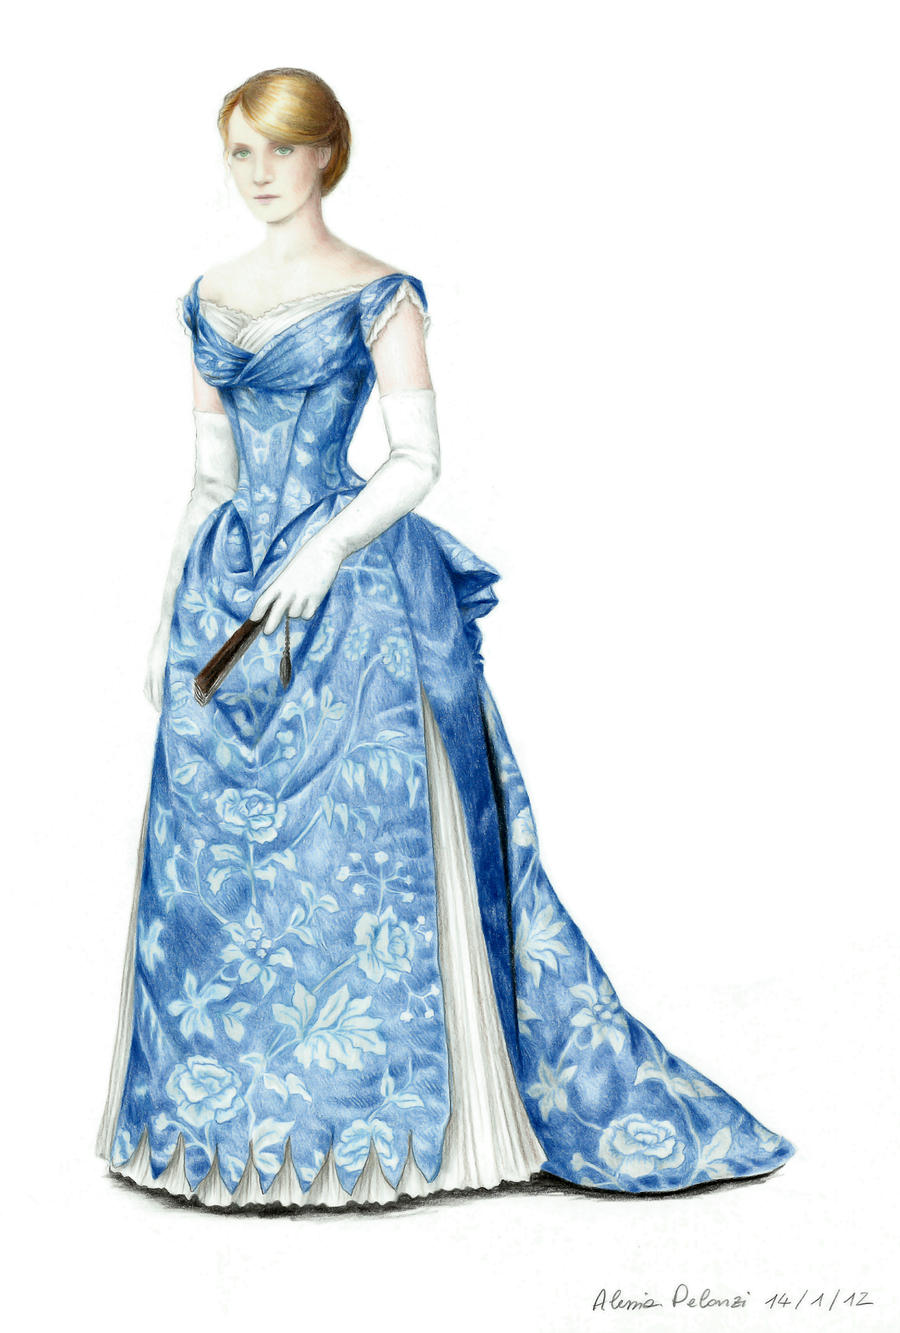 ball gown dress drawings - photo #12